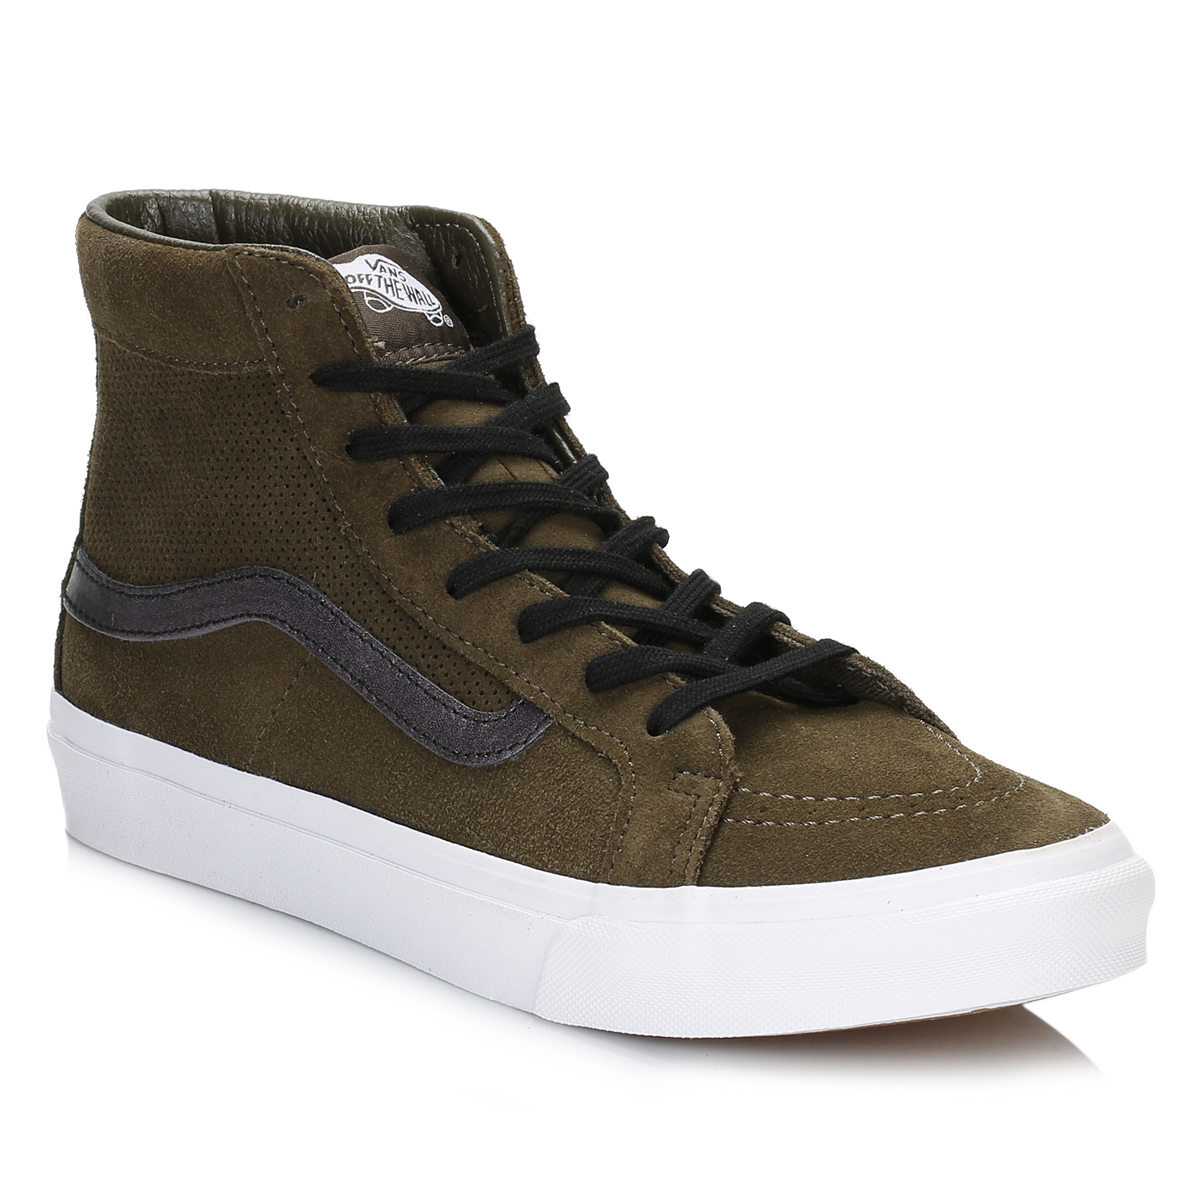 Find great deals on eBay for lace up high tops. Shop with confidence.